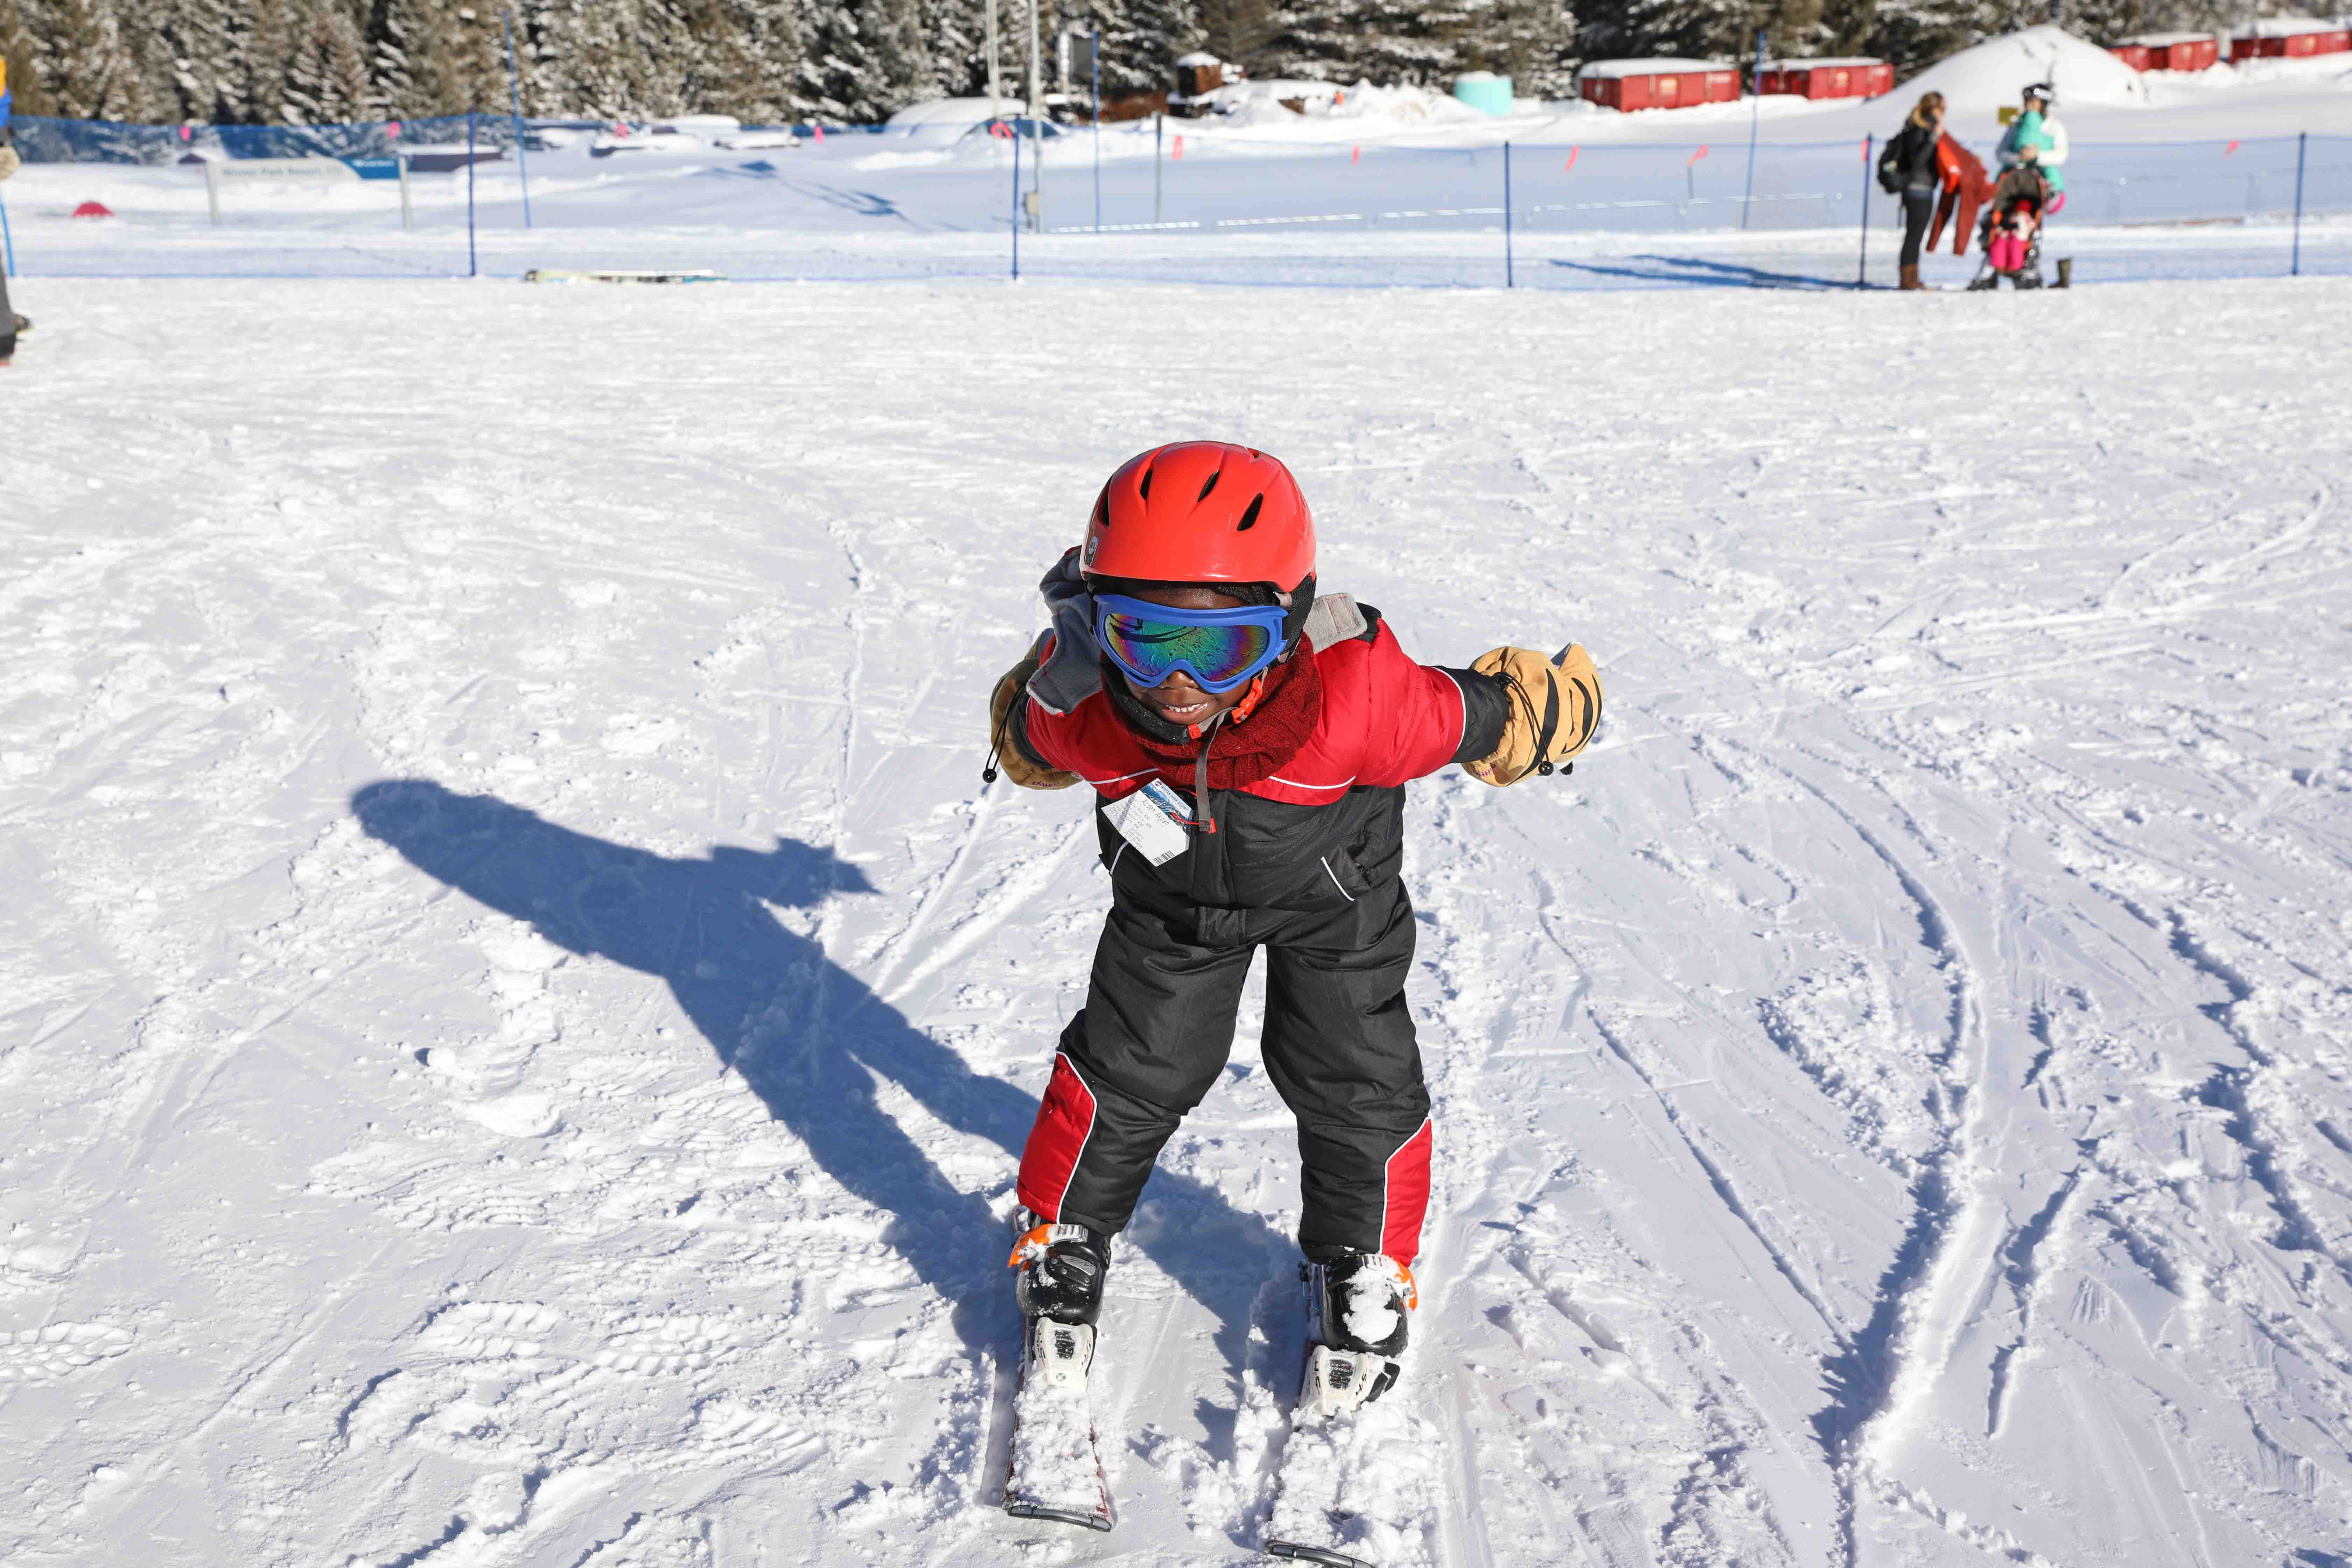 A little boy in a red and black snowsuit standing on a set of skies on a ski slope with all of his snow gear for kids